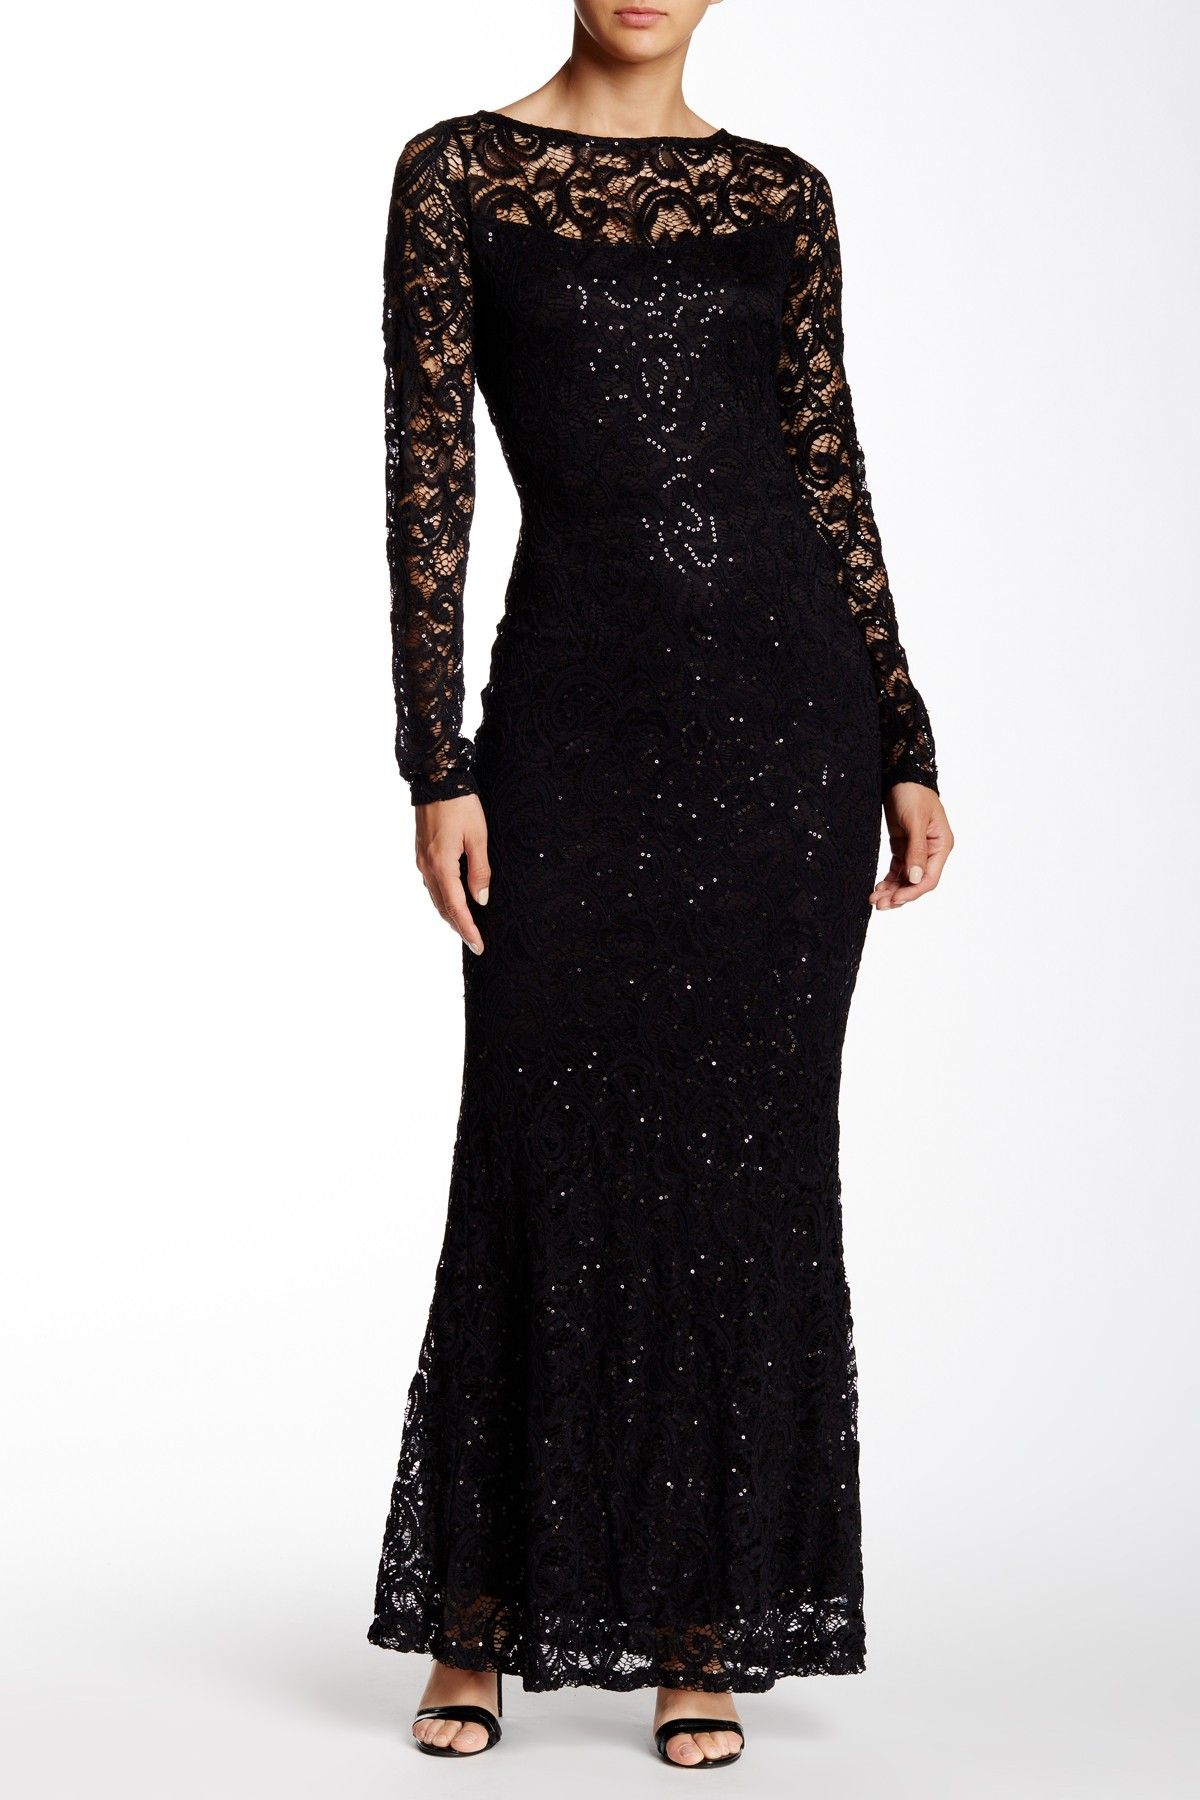 811a78215573 Marina - Long Sleeve Lace Gown at Nordstrom Rack. Free Shipping on orders  over $100.